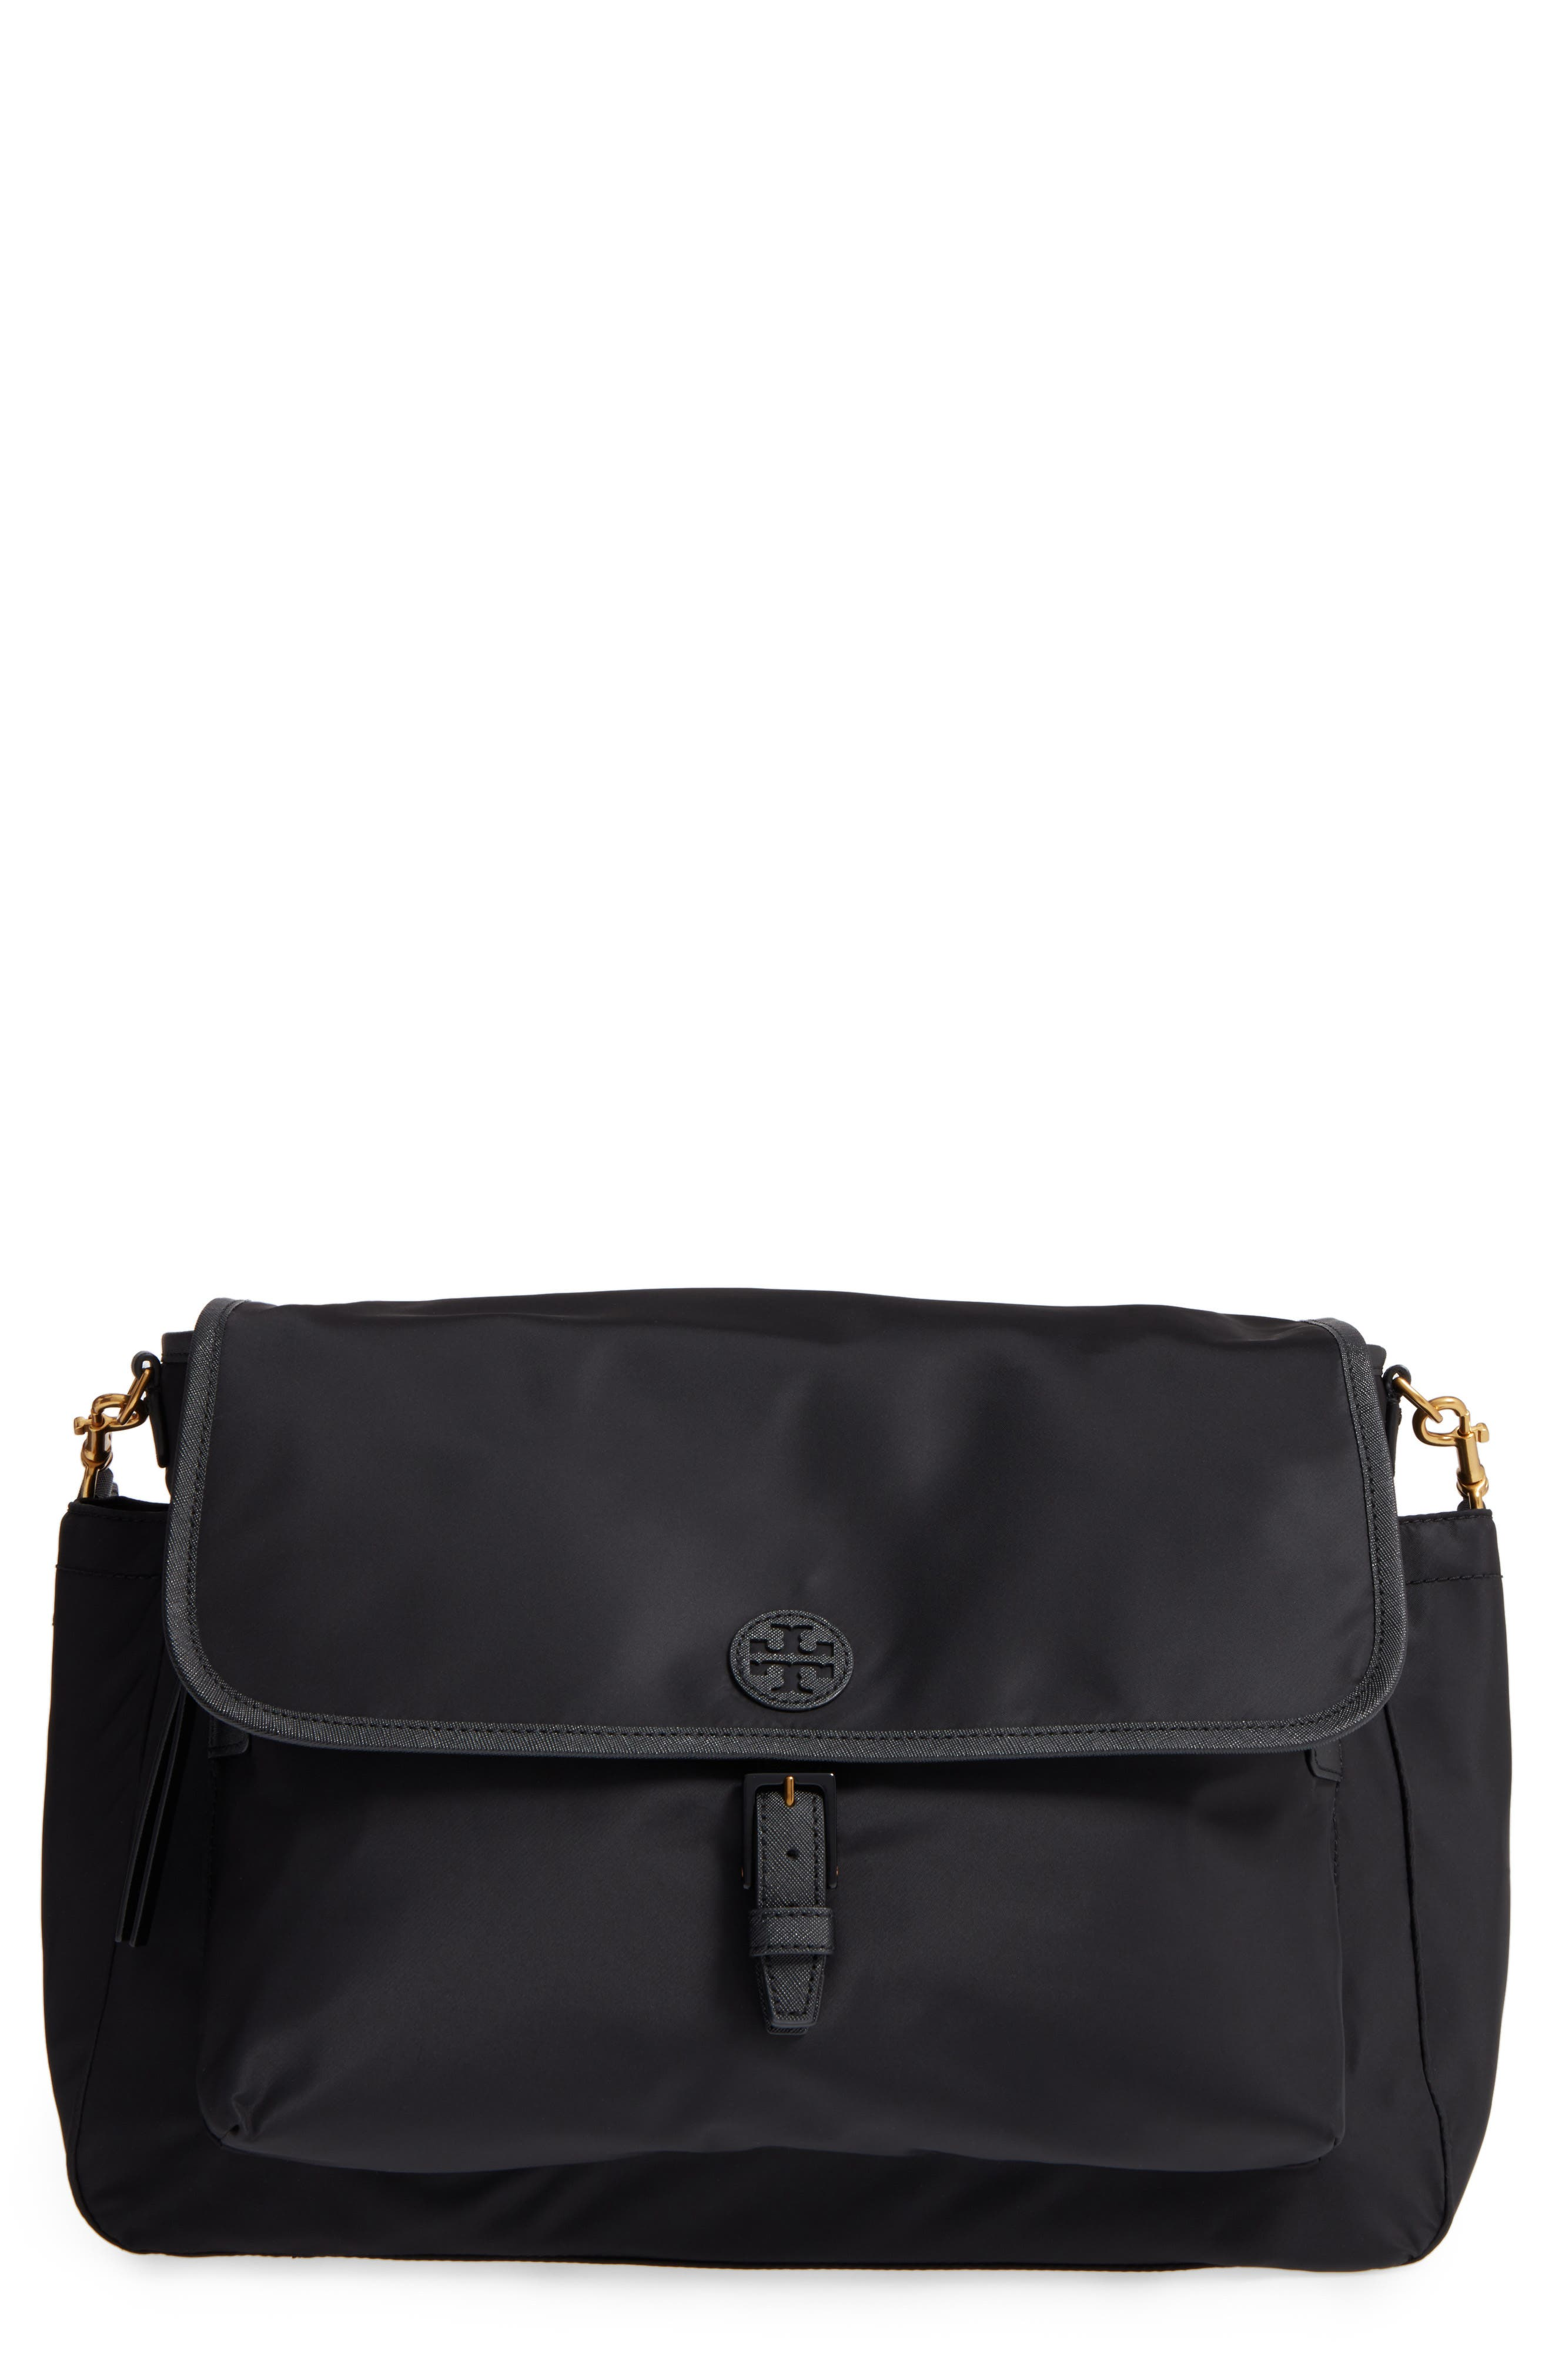 Tory Burch Scout Messenger Diaper Bag